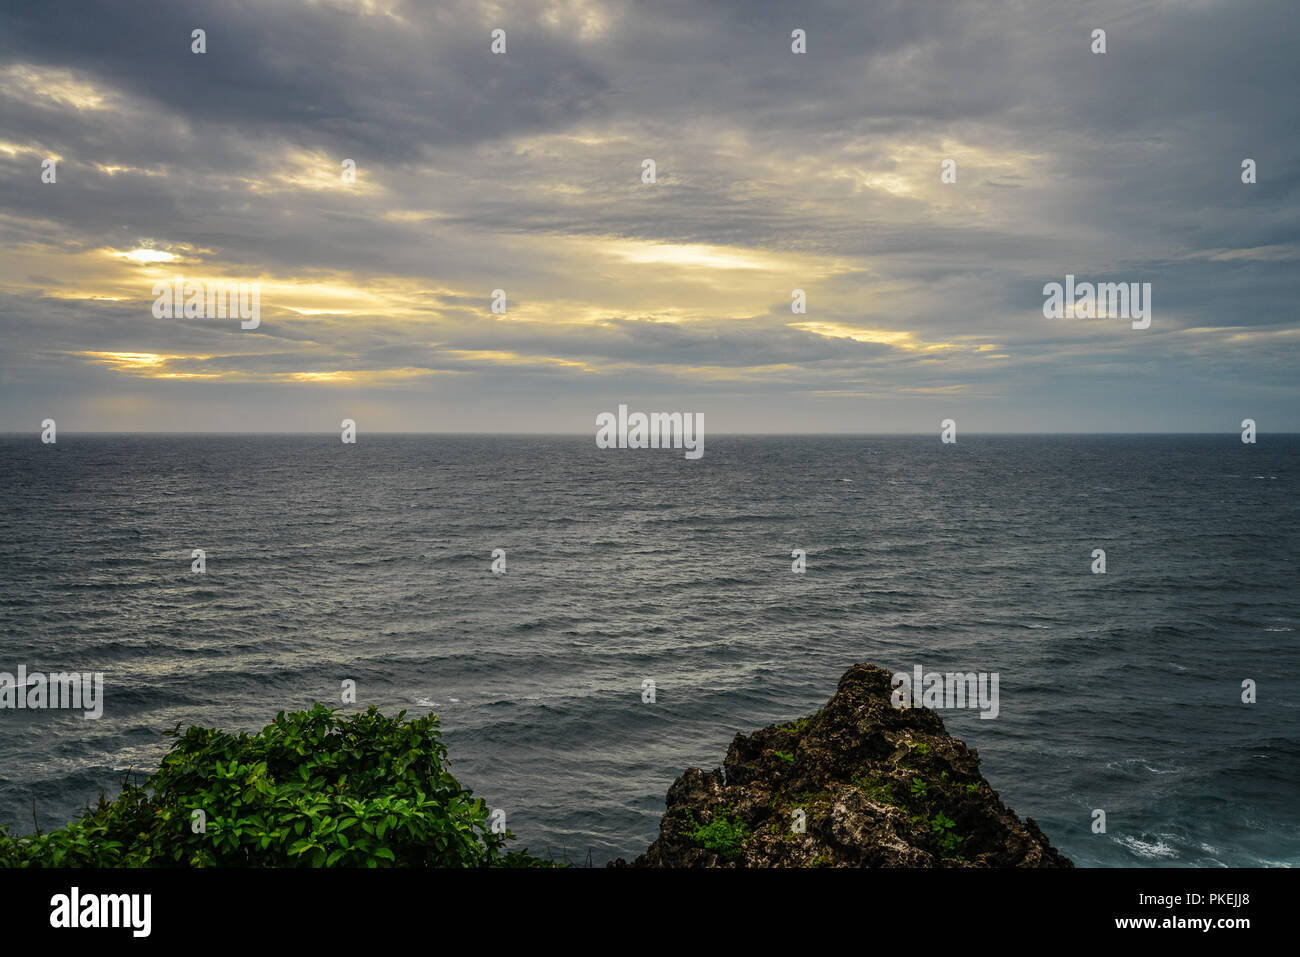 View from Pura Luhur Uluwatu temple, Bali, Indonesia on sunset over the sea. - Stock Image